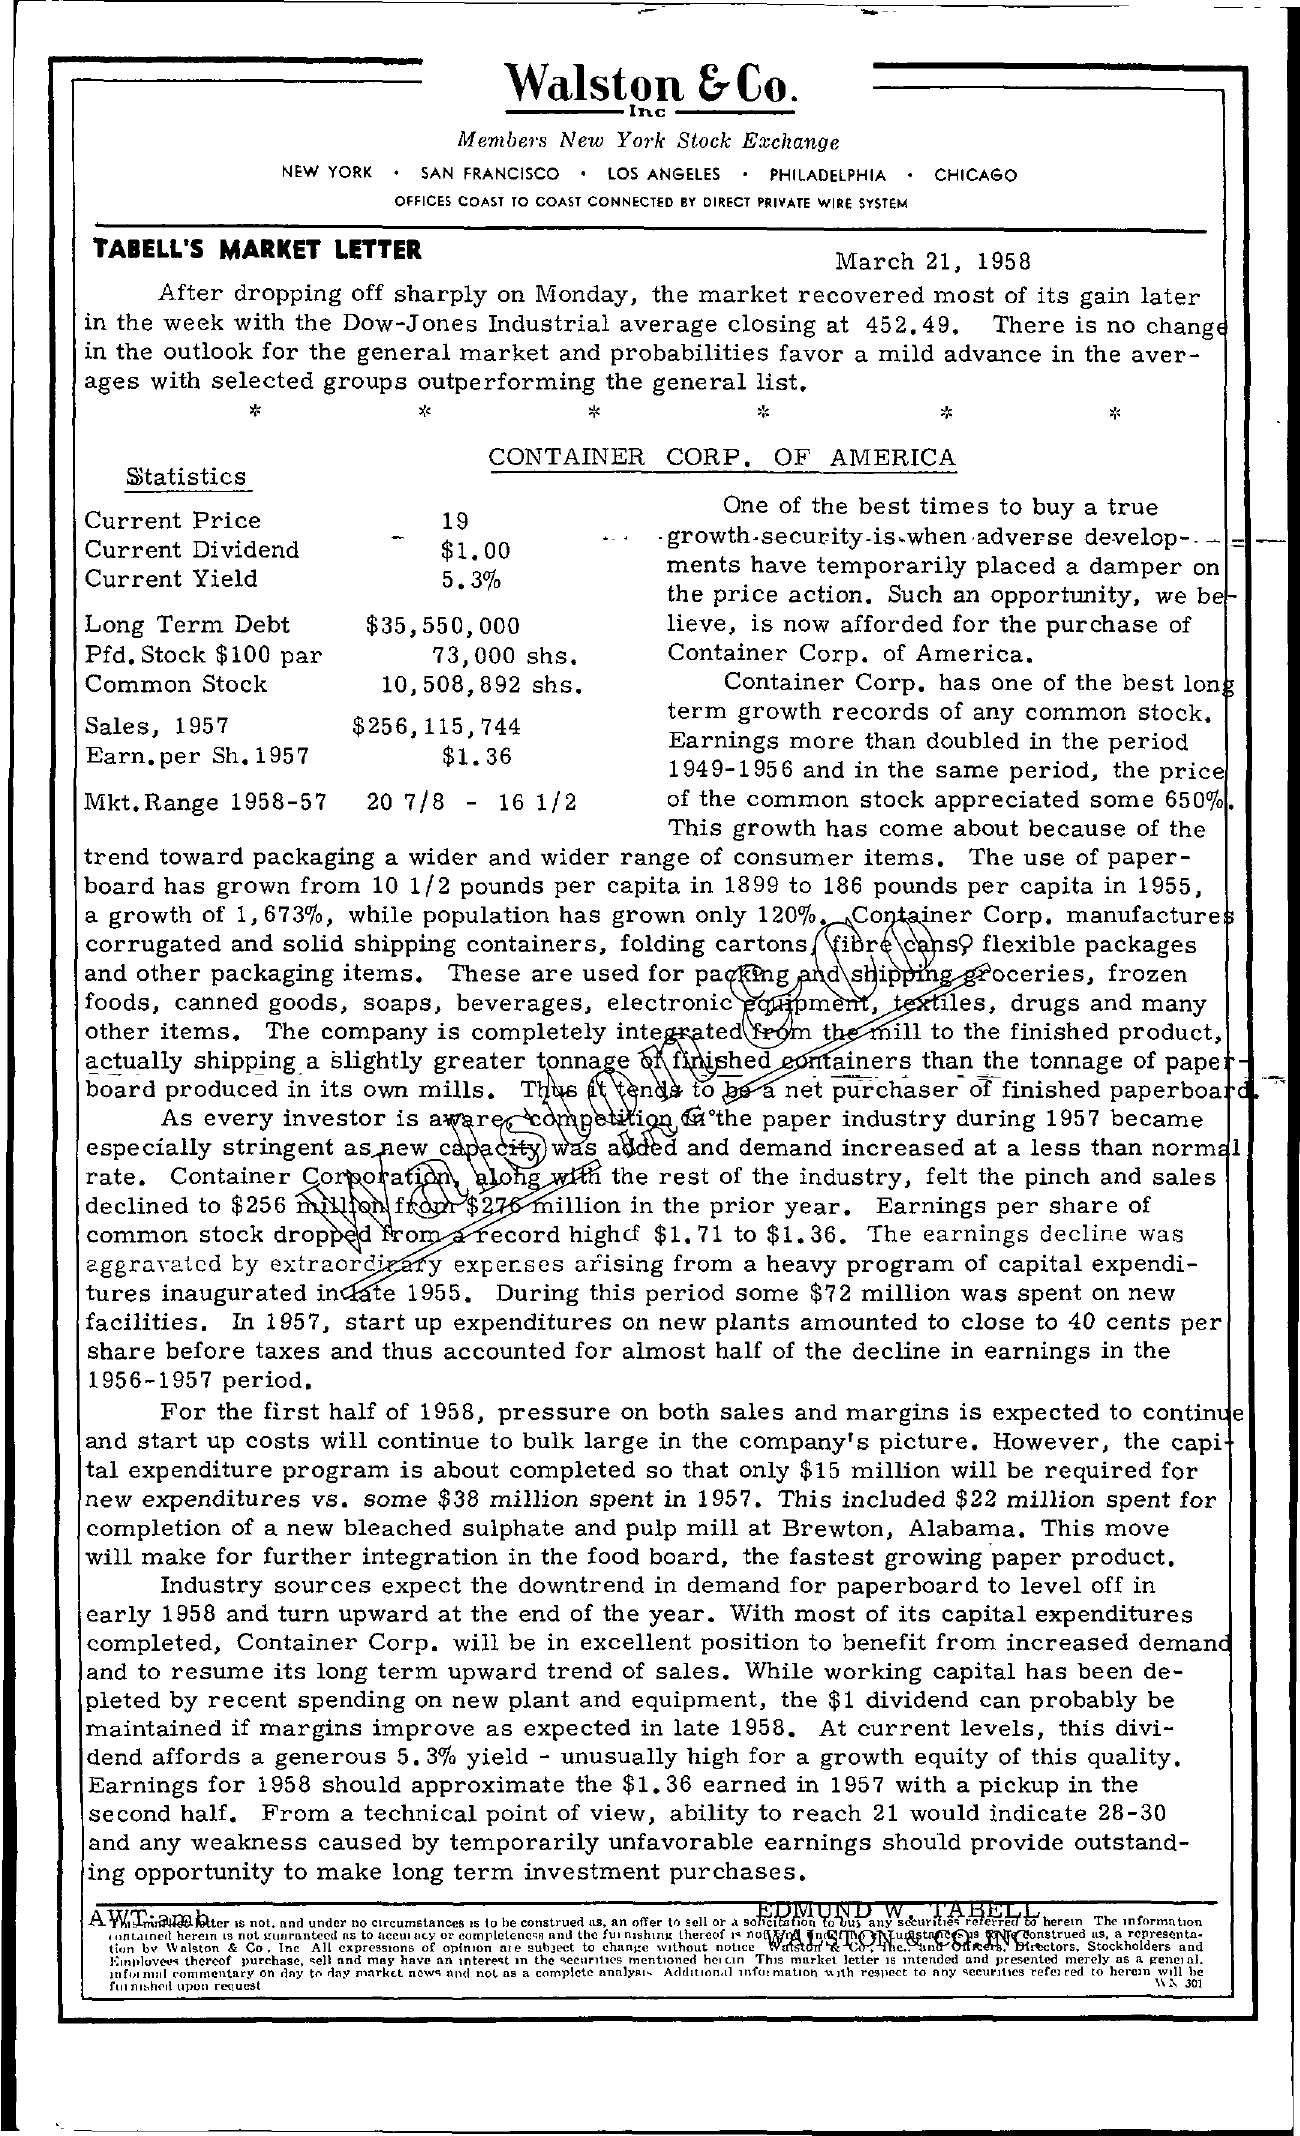 Tabell's Market Letter - March 21, 1958